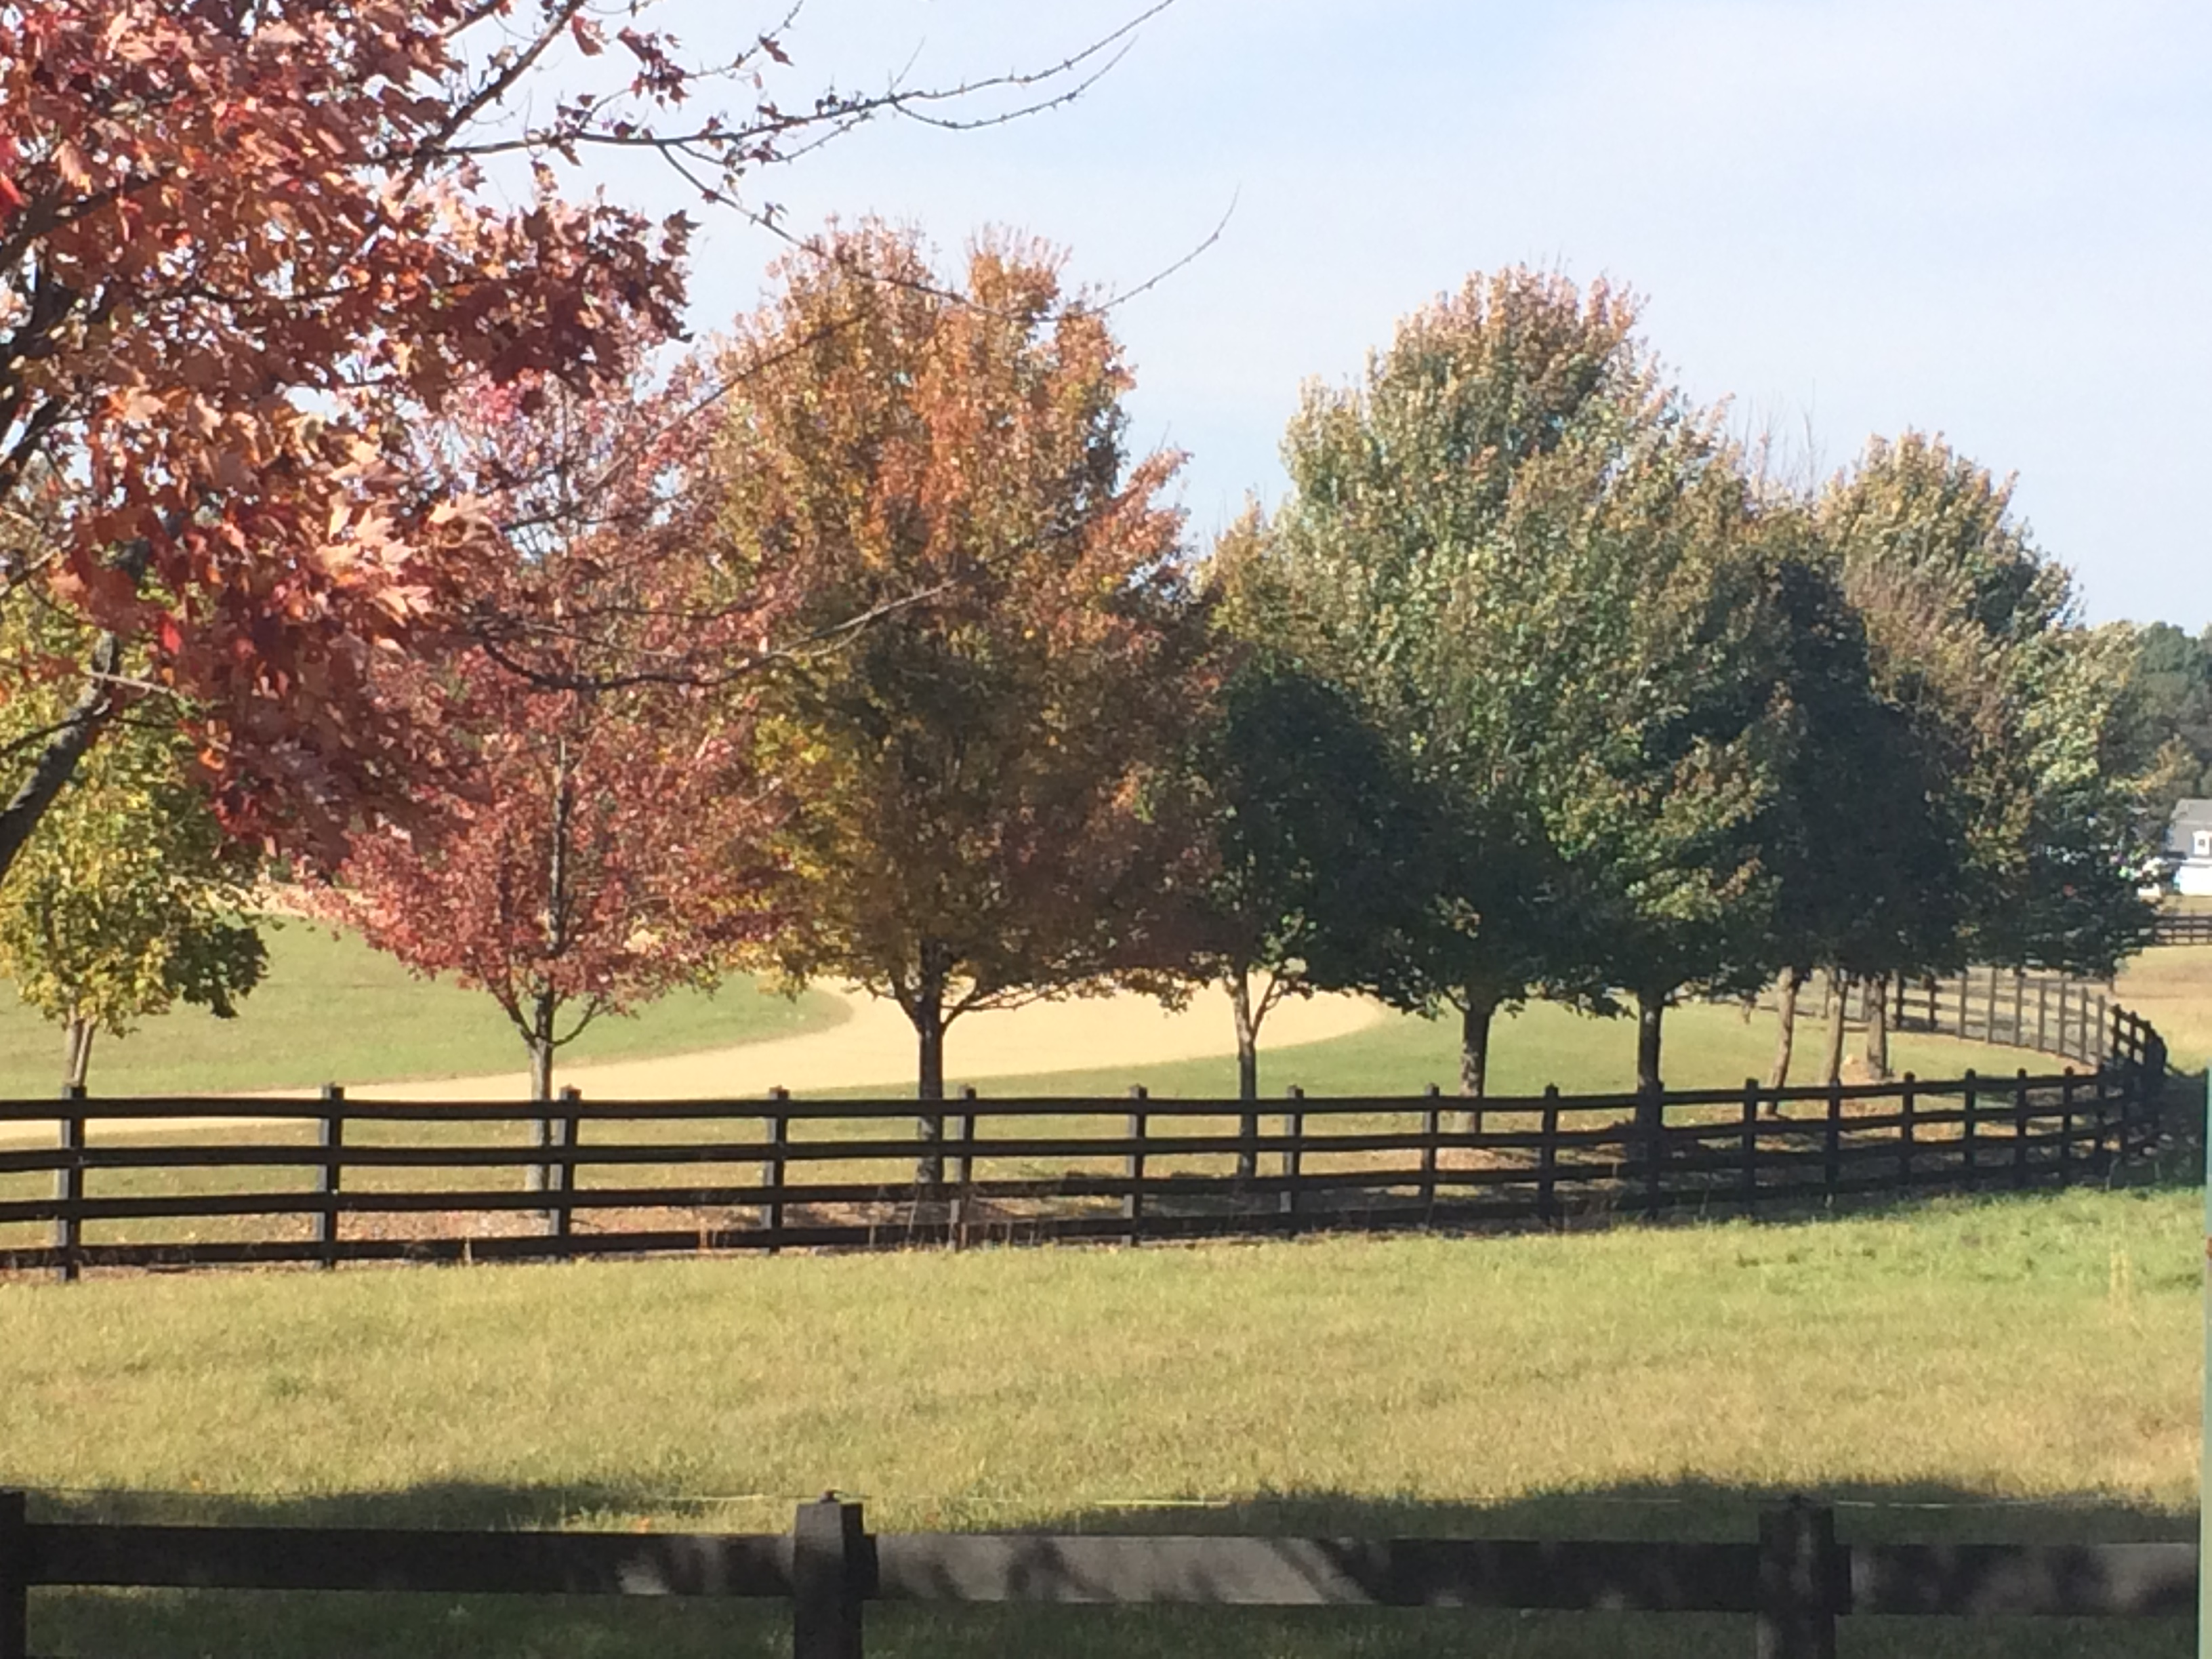 A brown 4 board fence along a dirt road with green grass and trees in various fall colors of red, yellow, orange, and green against a light blue sky